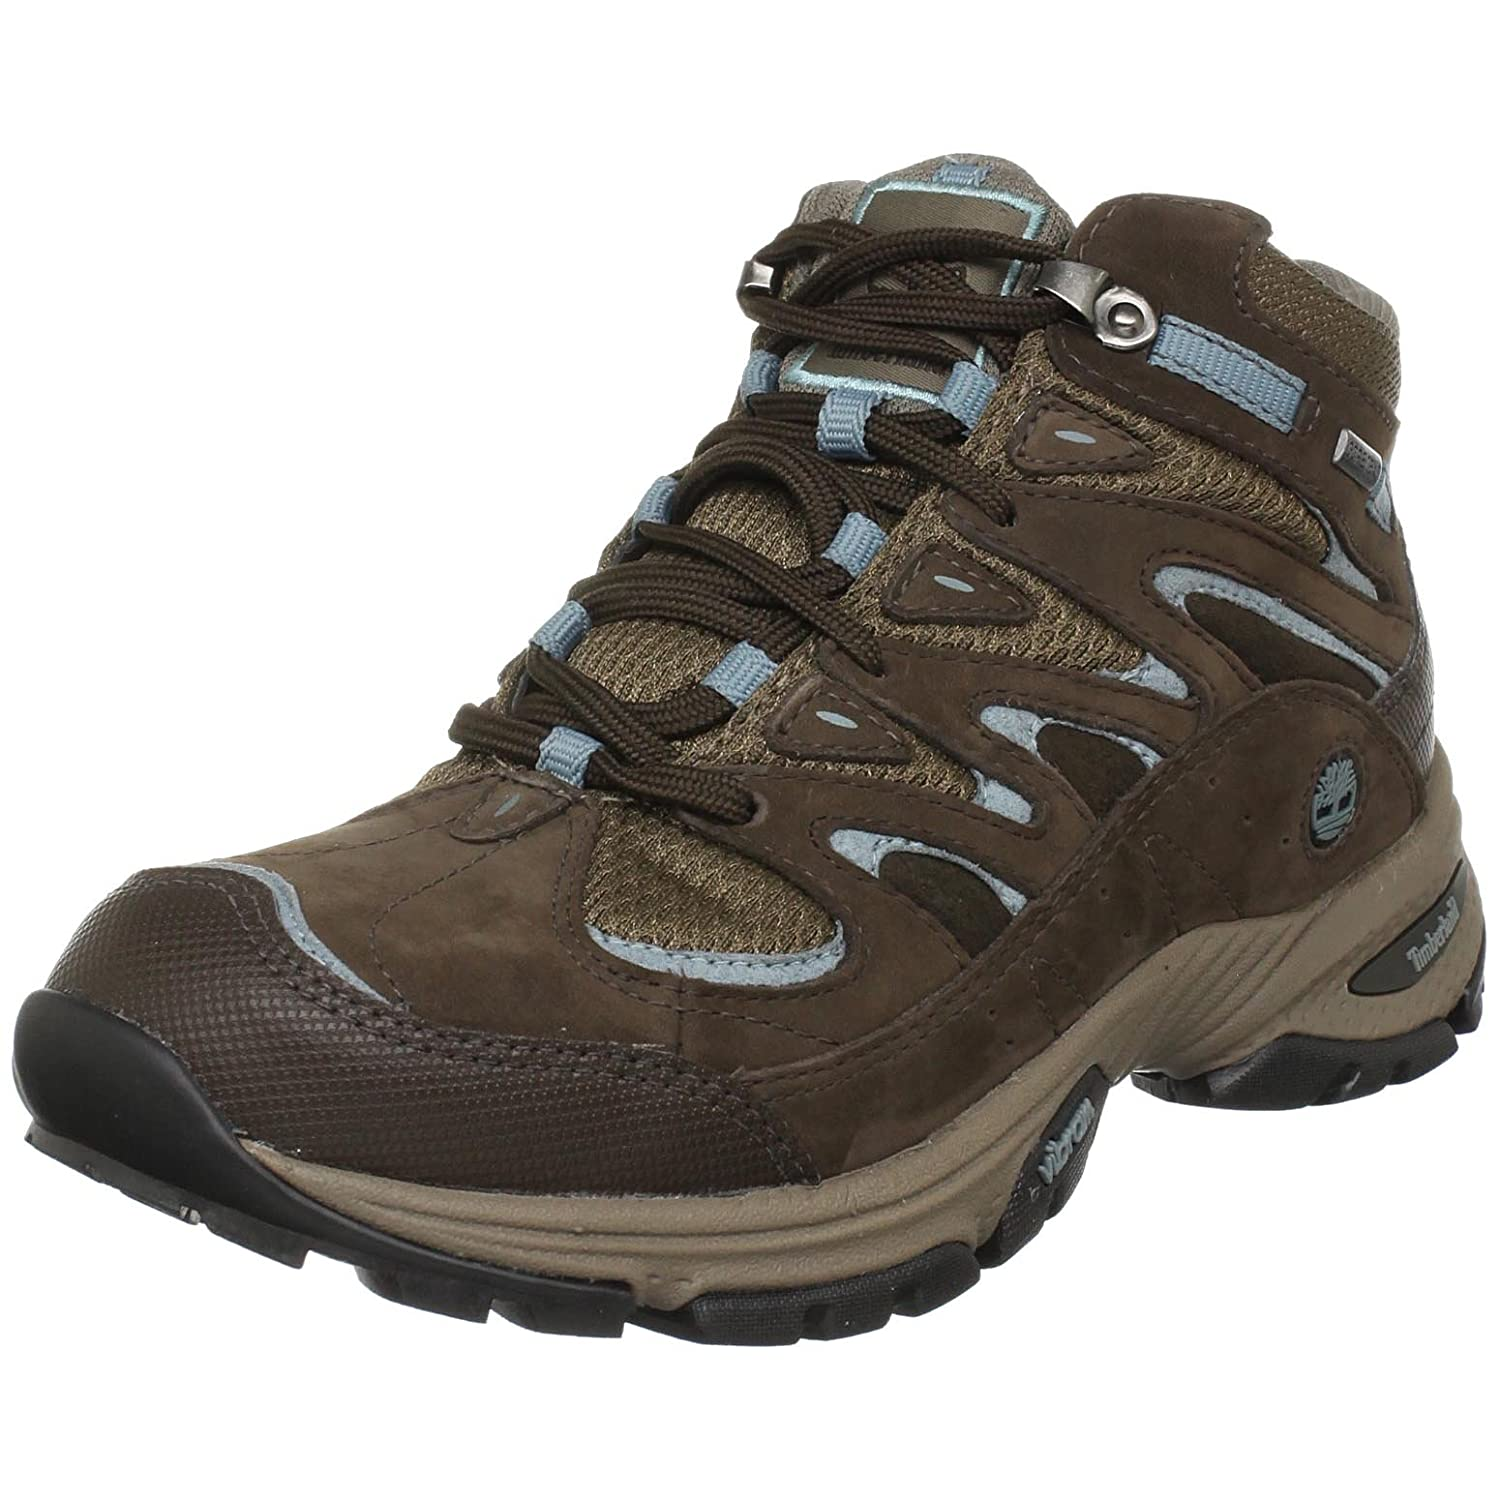 19d4941b835 Timberland Women's Ledge FTP Mid Leather GTX Sports and Outdoor Shoes